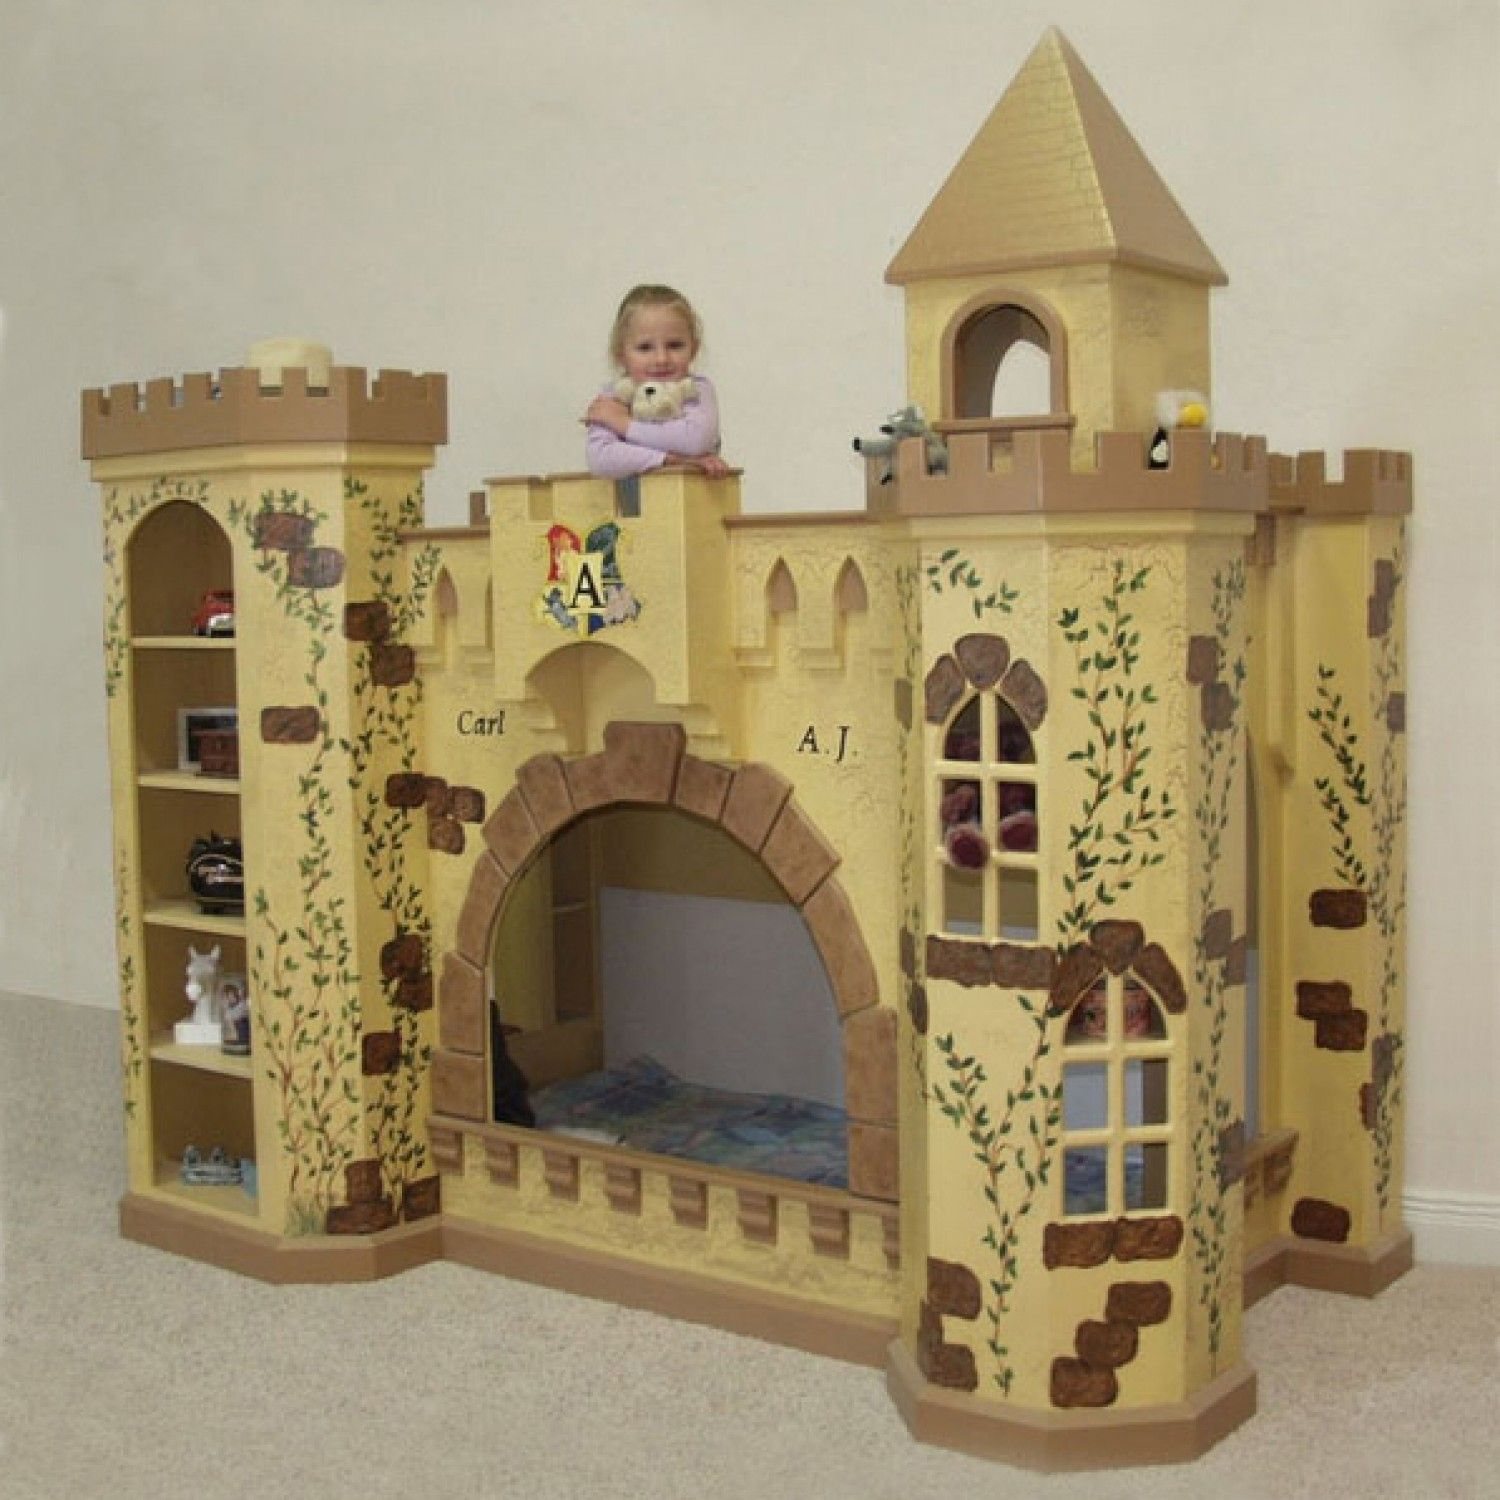 Princess Bed Blueprints Princess Bunk Bed Playhouse Castle Bunk Bed Loft Hand Painted